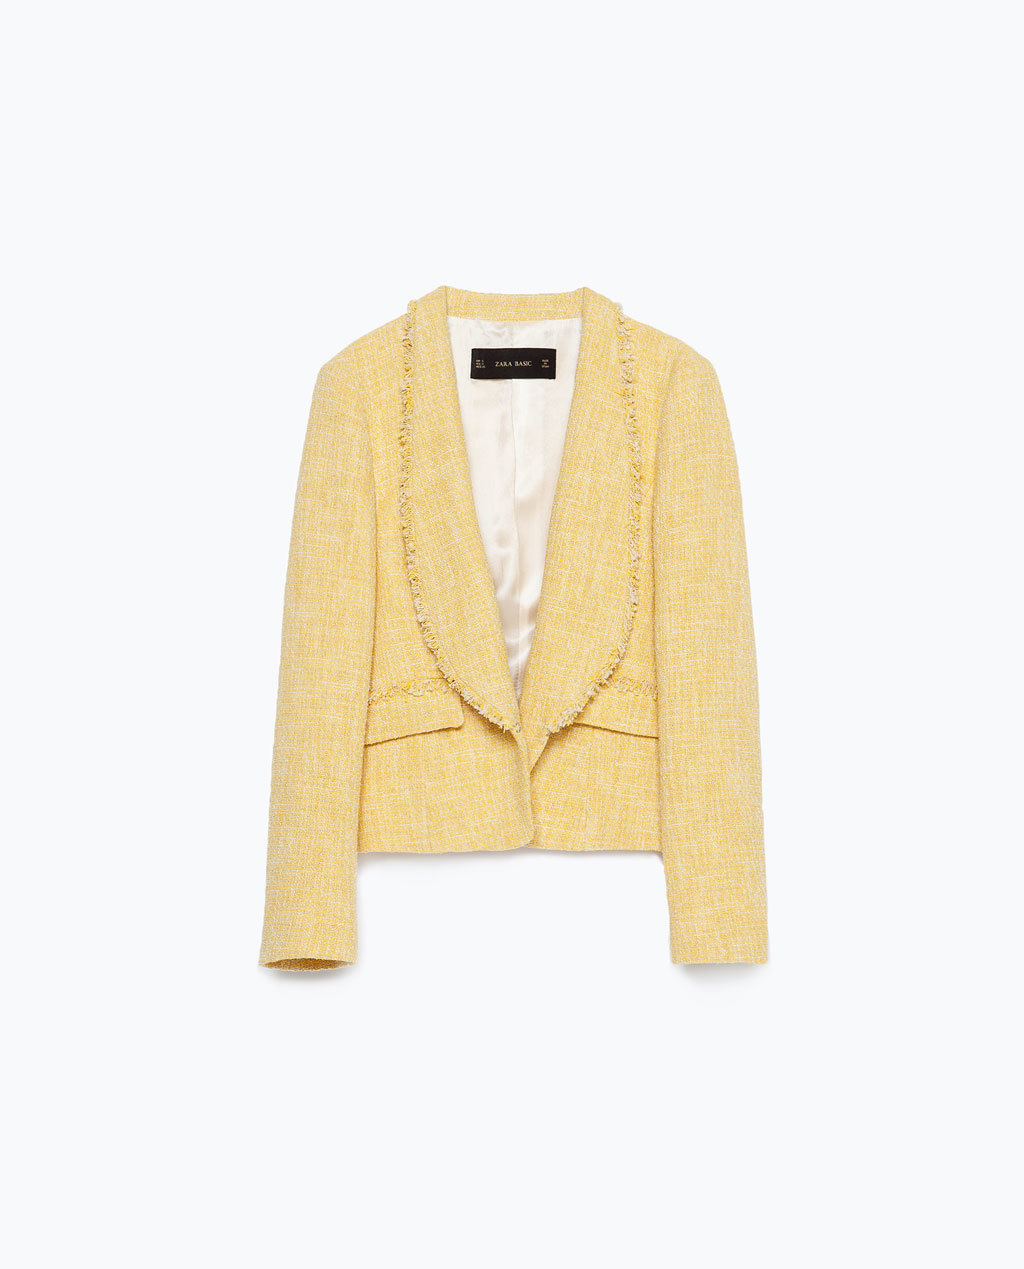 Frayed Short Blazer - pattern: plain; style: single breasted blazer; collar: shawl/waterfall; predominant colour: primrose yellow; occasions: casual, work, creative work; length: standard; fit: straight cut (boxy); fibres: cotton - mix; sleeve length: long sleeve; sleeve style: standard; collar break: low/open; pattern type: fabric; texture group: woven light midweight; season: s/s 2015; wardrobe: highlight